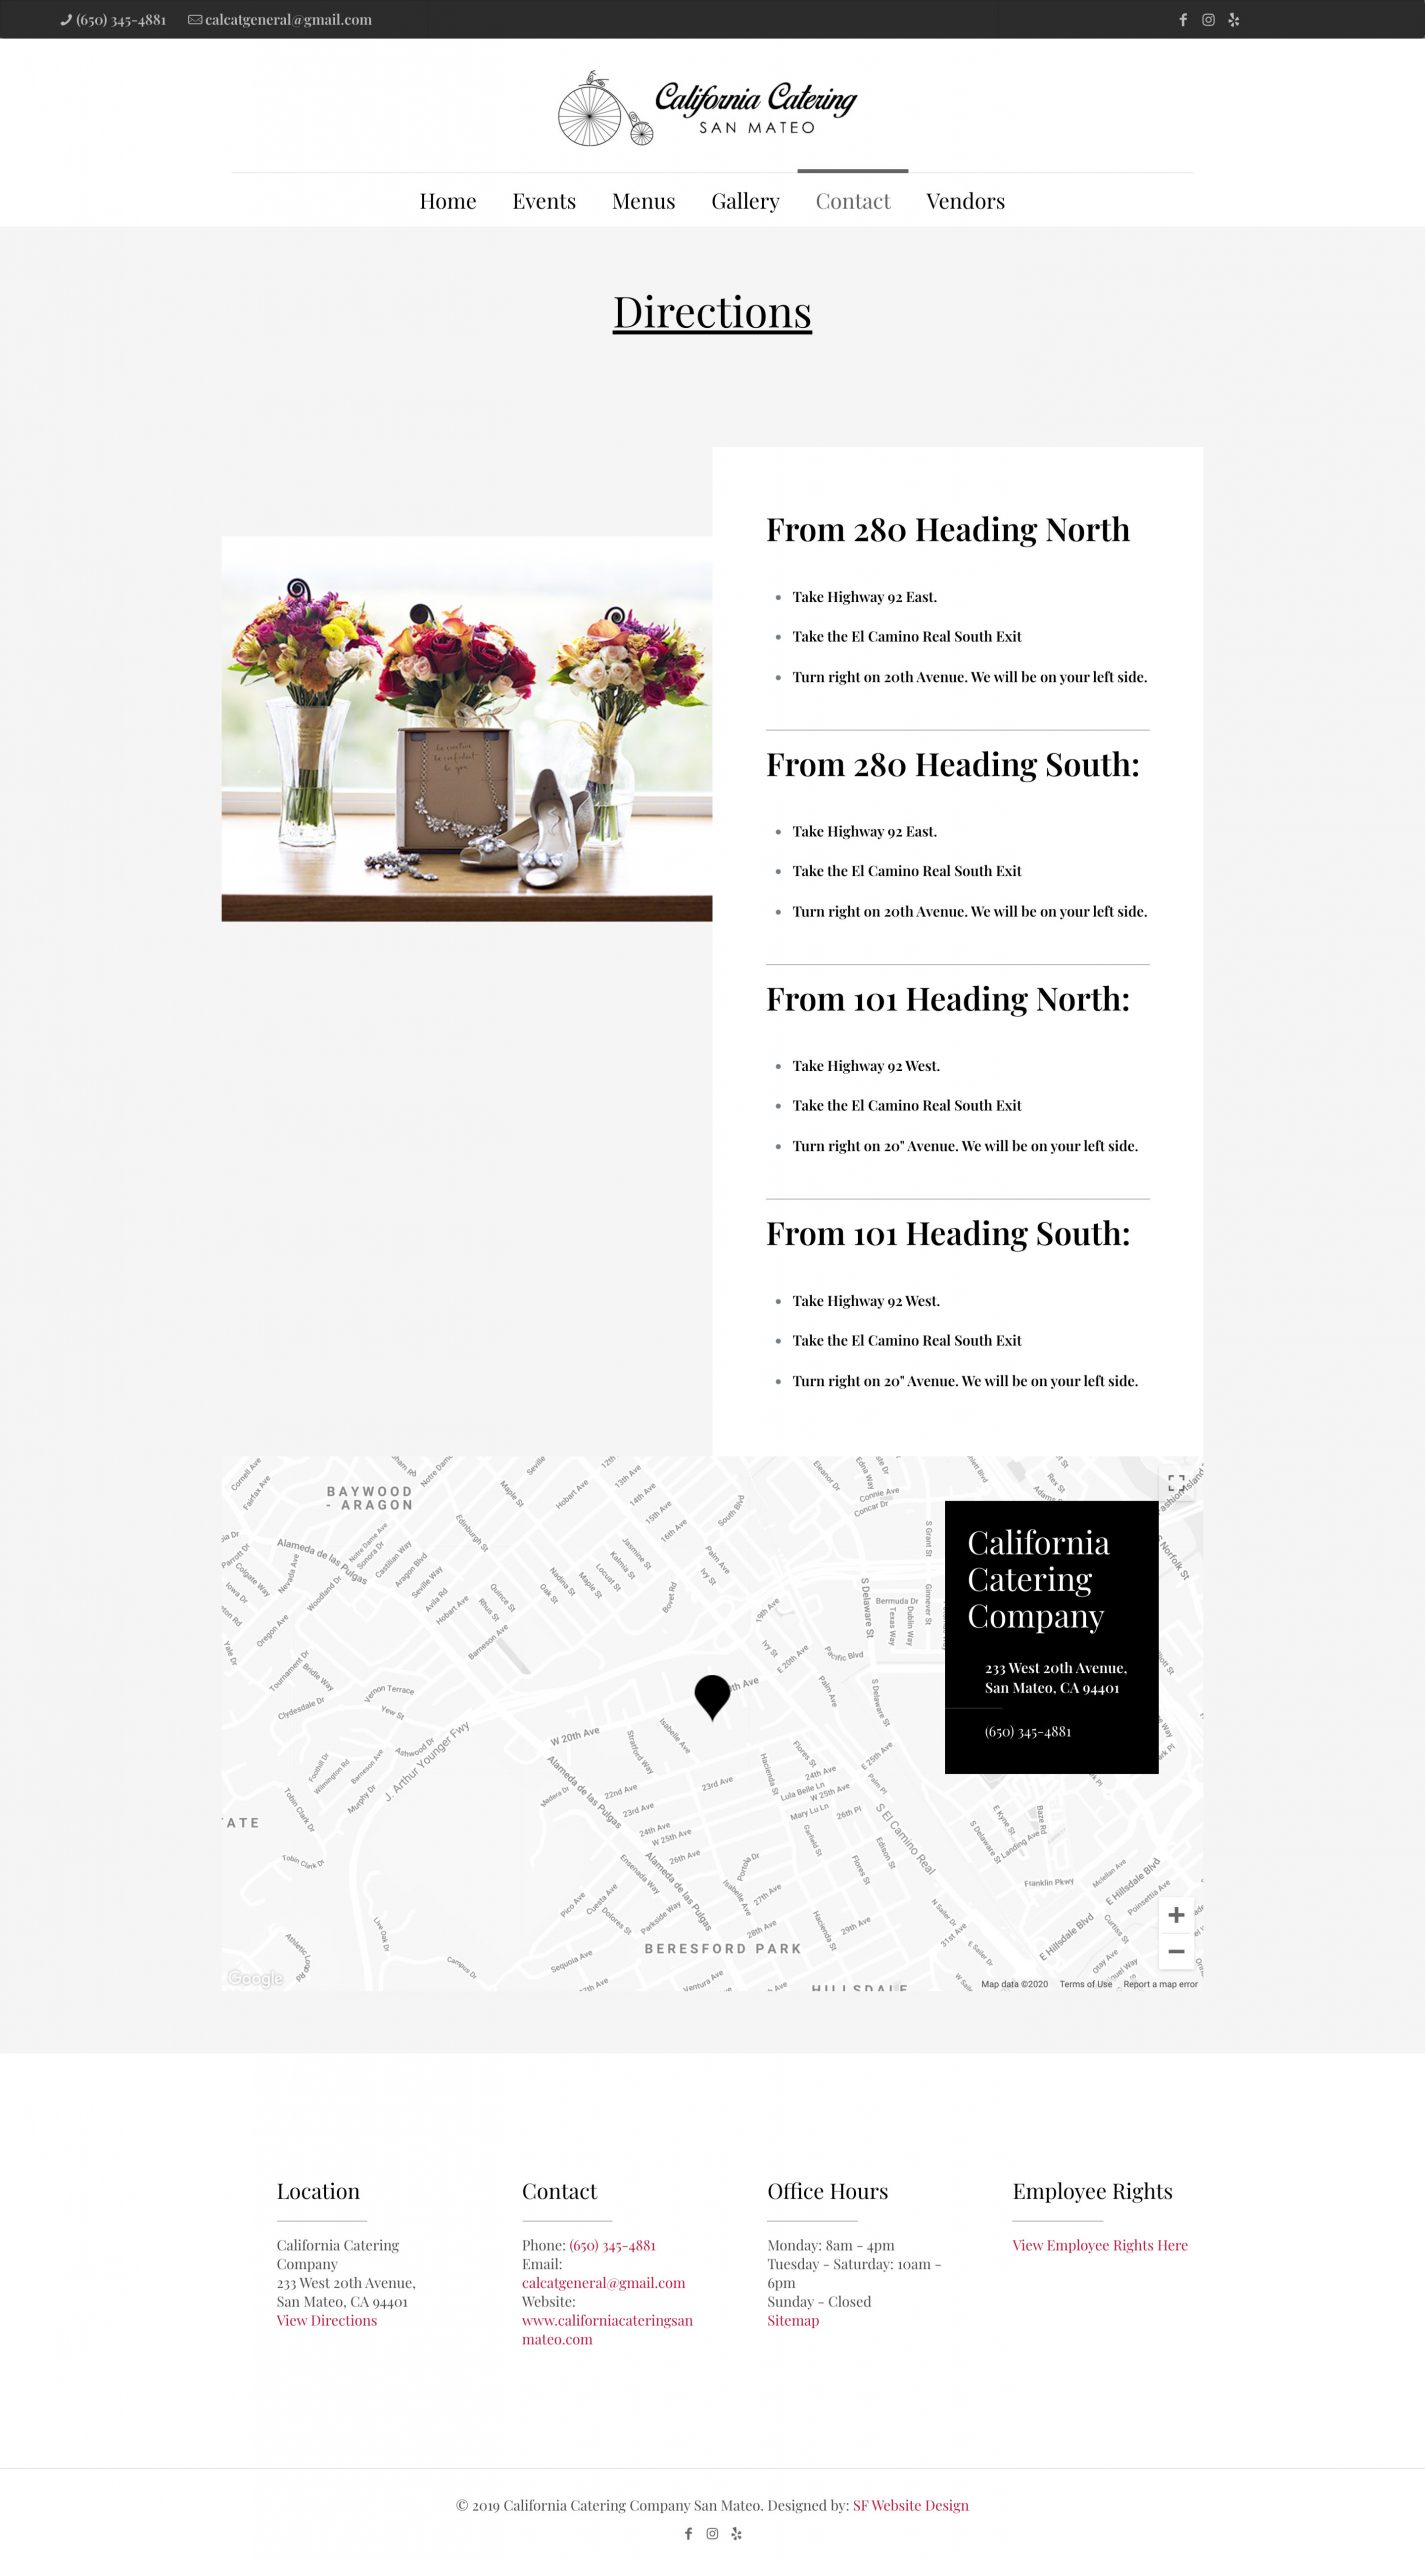 Directions to California Catering San Mateo - Weding Website Design